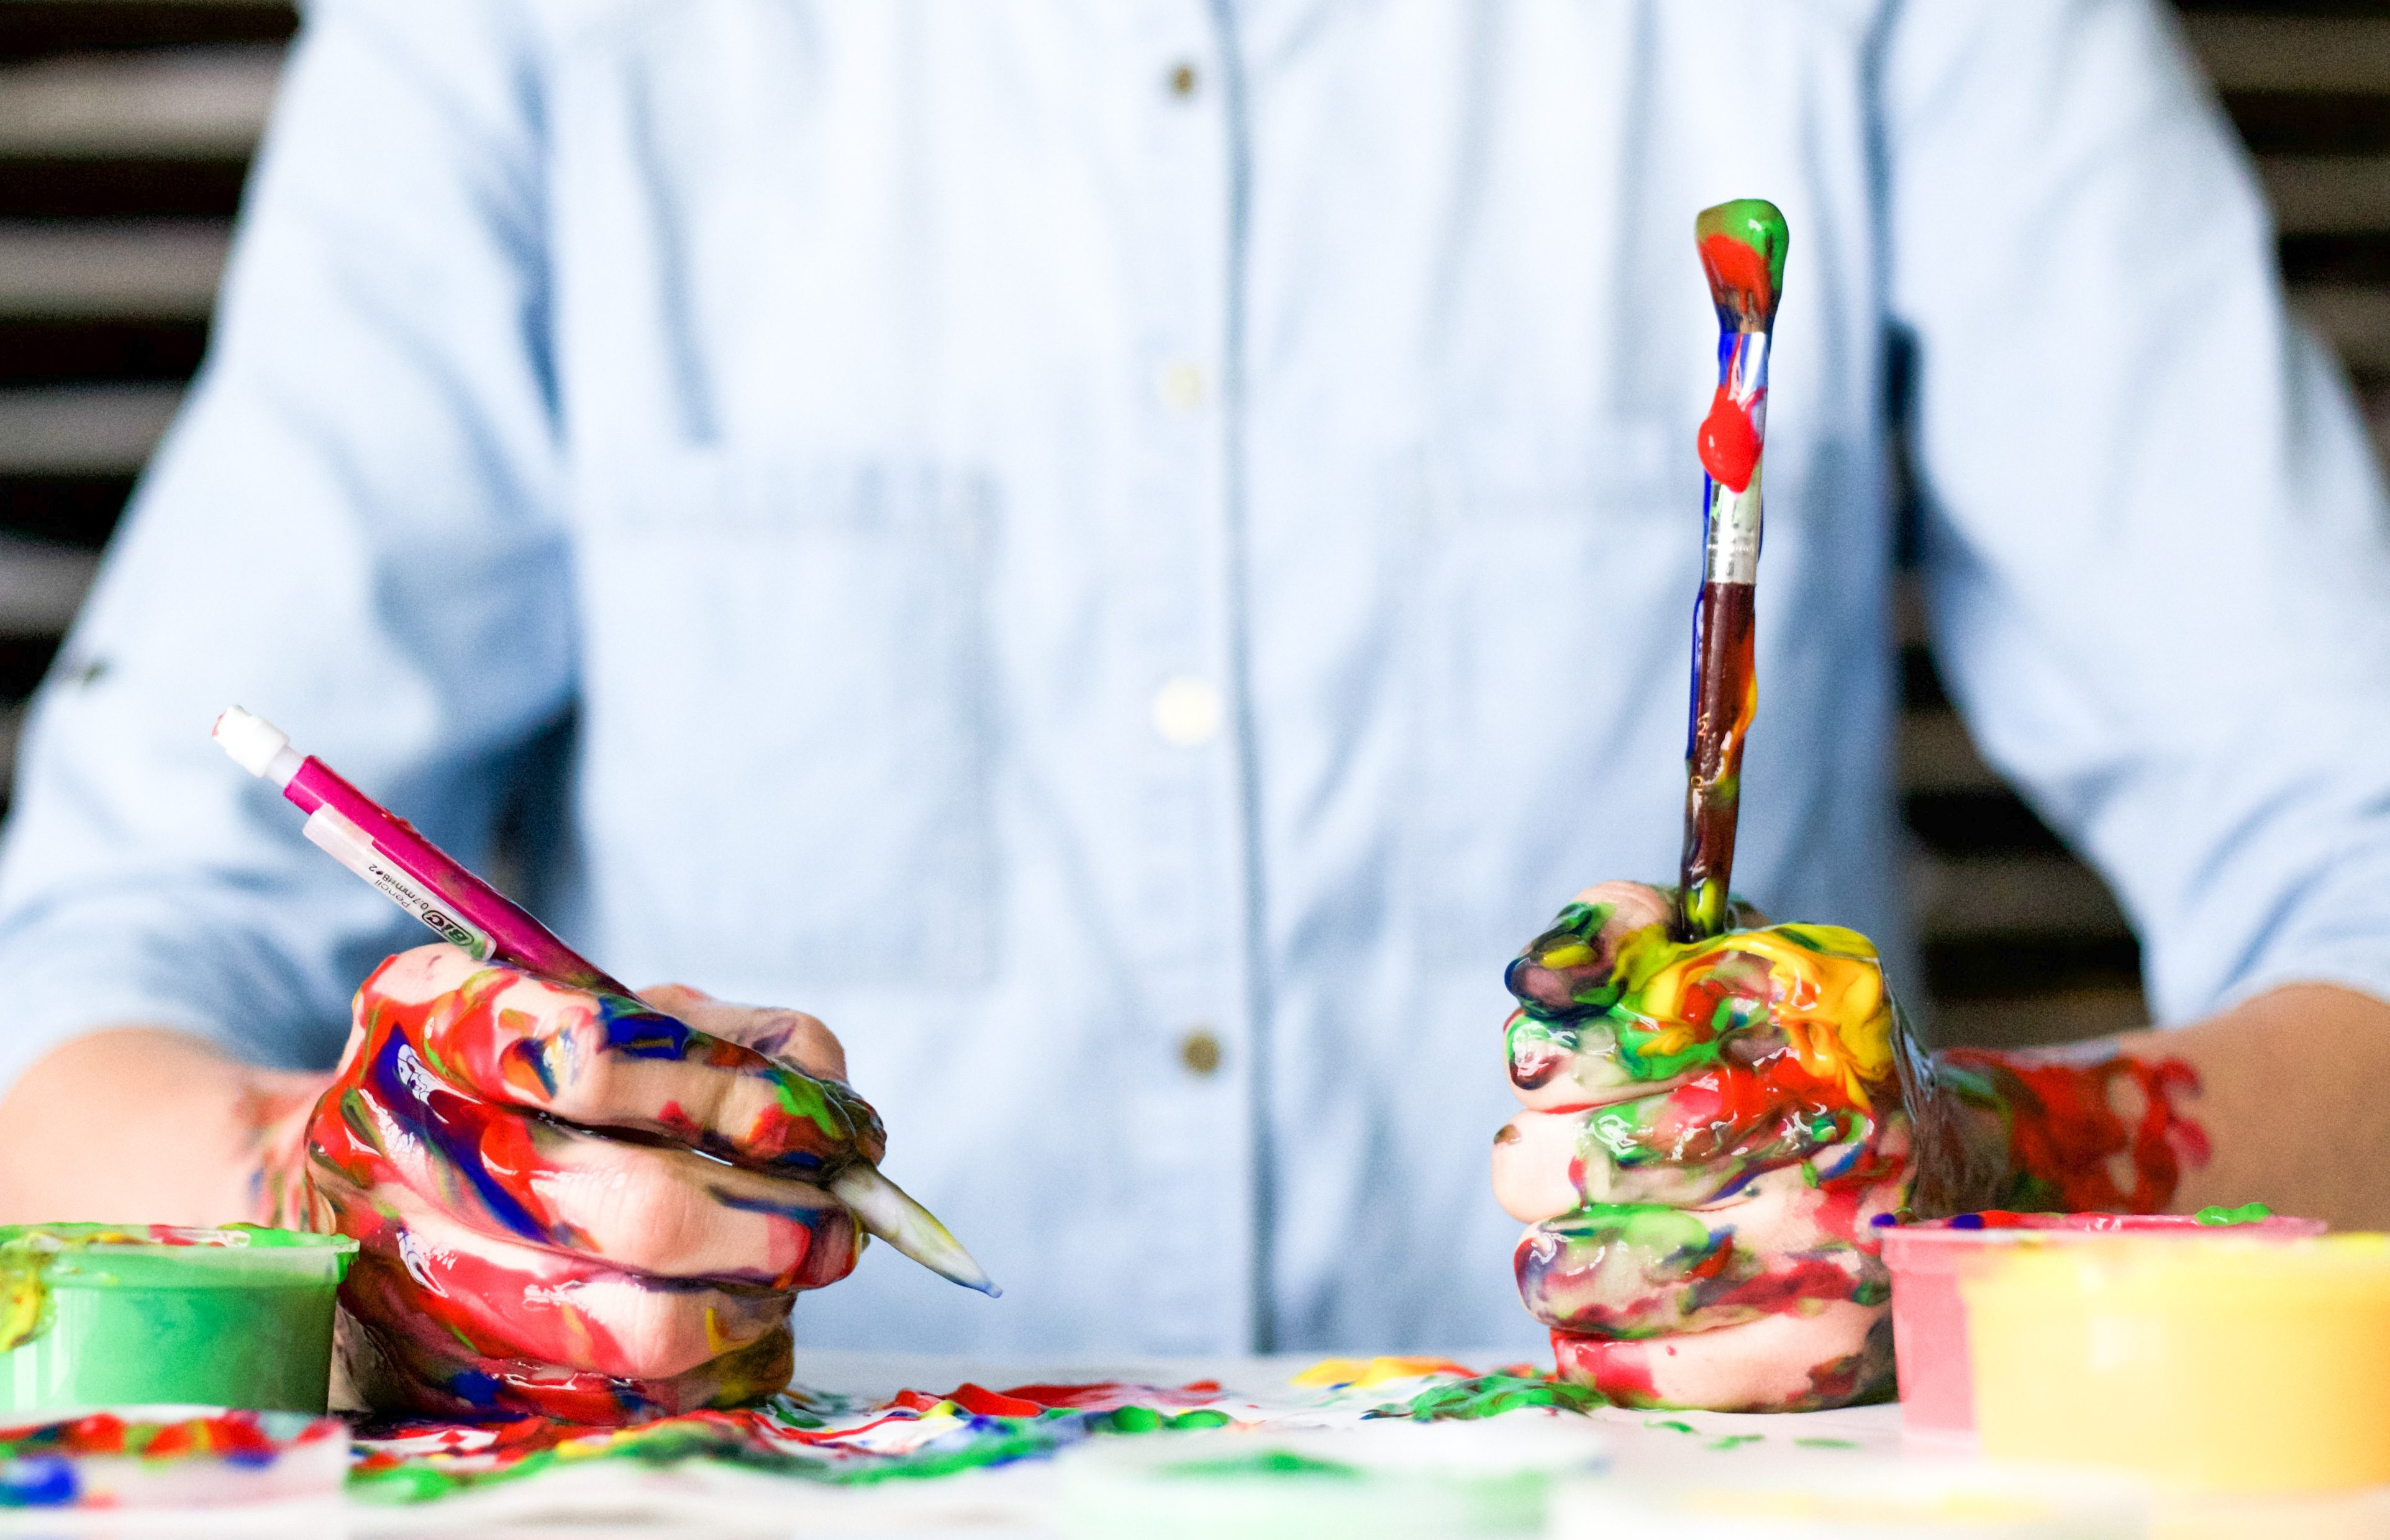 A person sits at a table with a pencil and paintbrush in their hands. Their hands and the materials are dripping in multicolored paint. It appears to be a child.